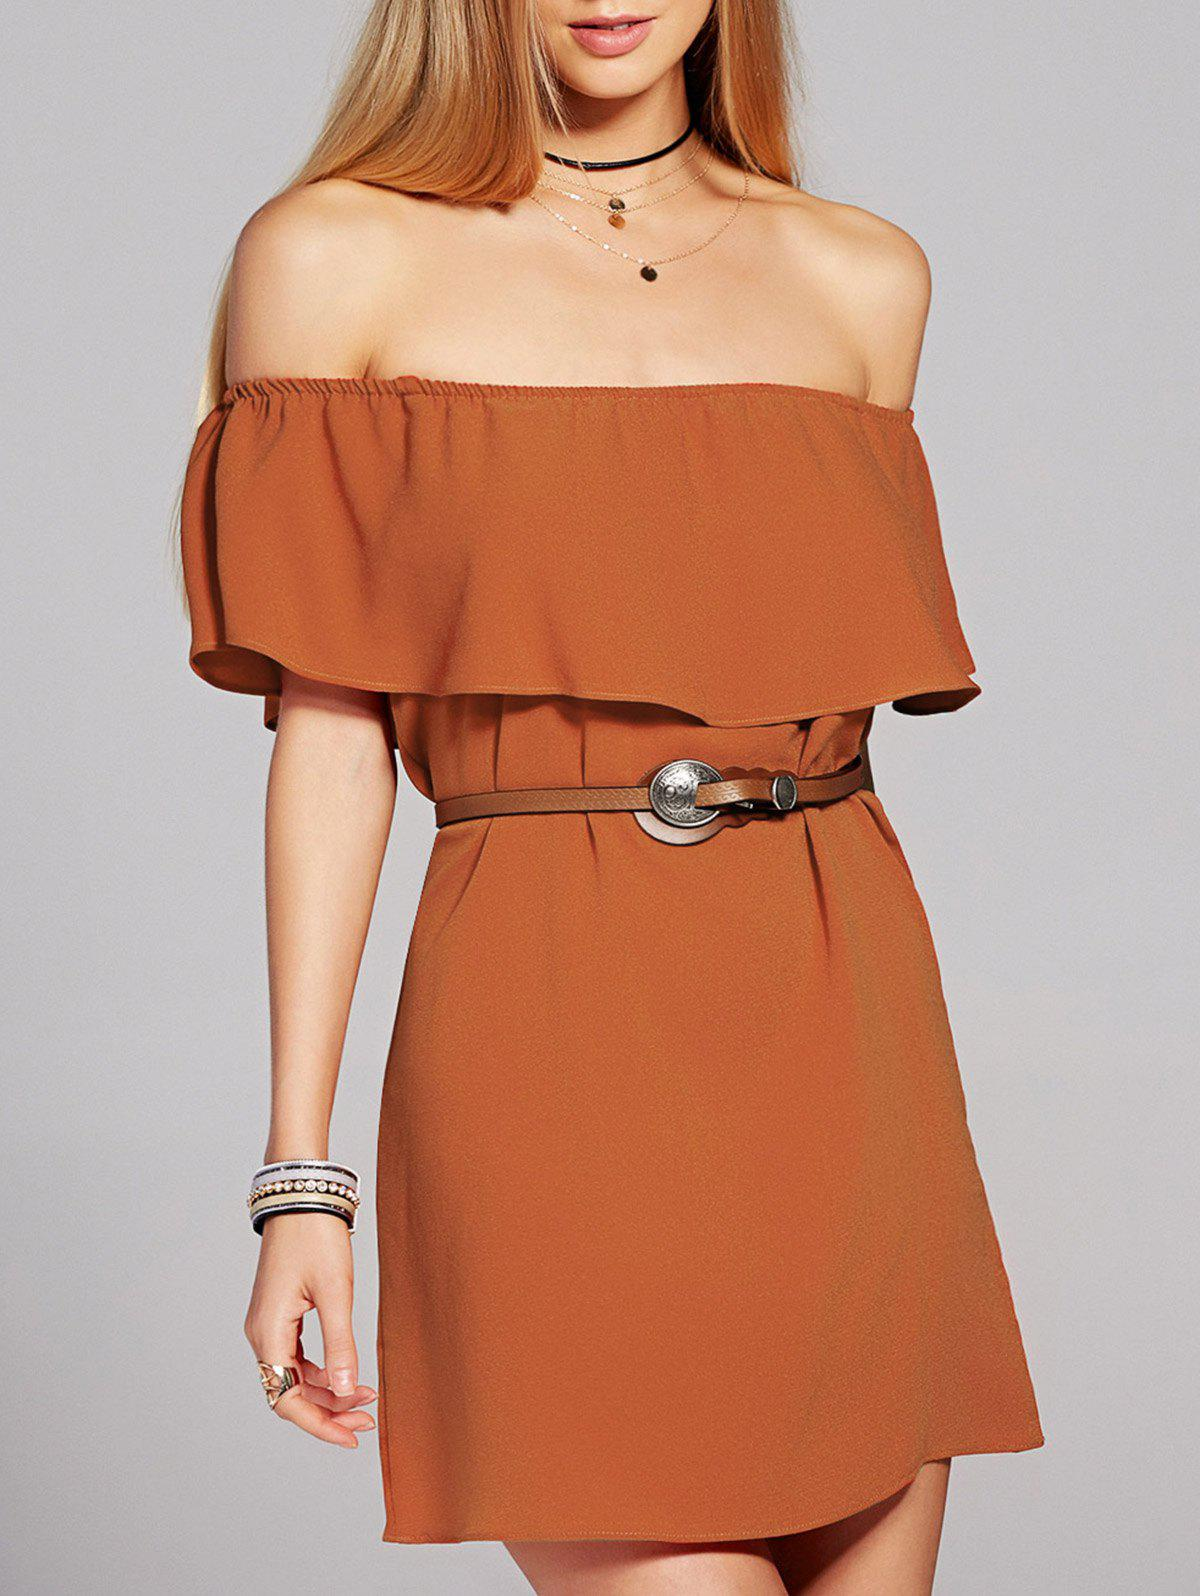 Flounce Chiffon Off The Shoulder Dress - SWEET ORANGE M